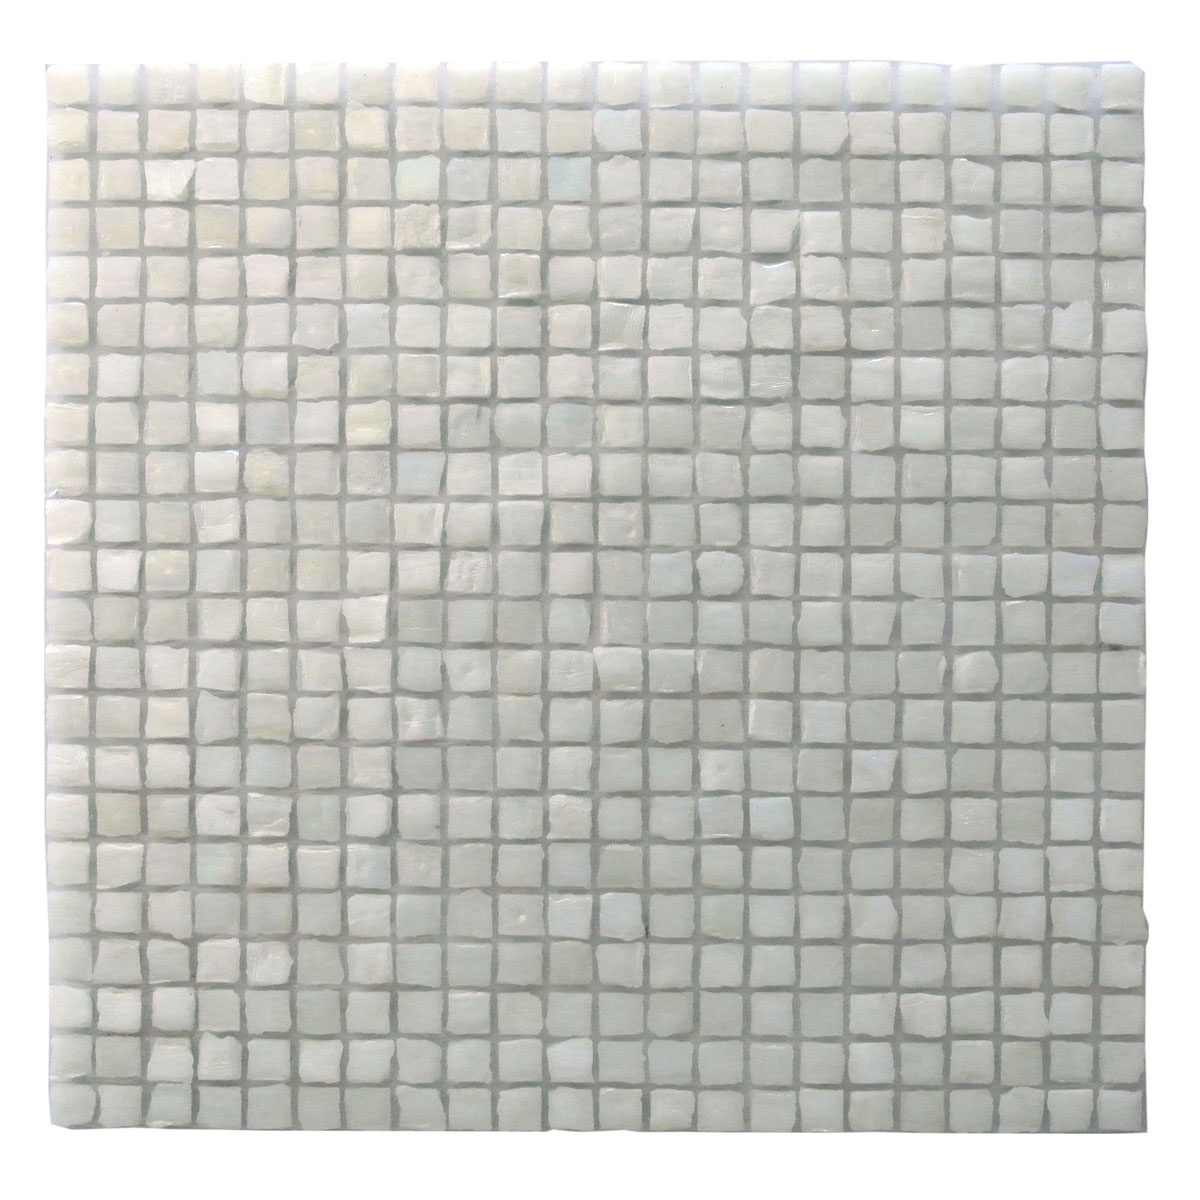 Ecologic 0.375 in x 0.375 in Glass Square Mosaic in NEVE Glossy